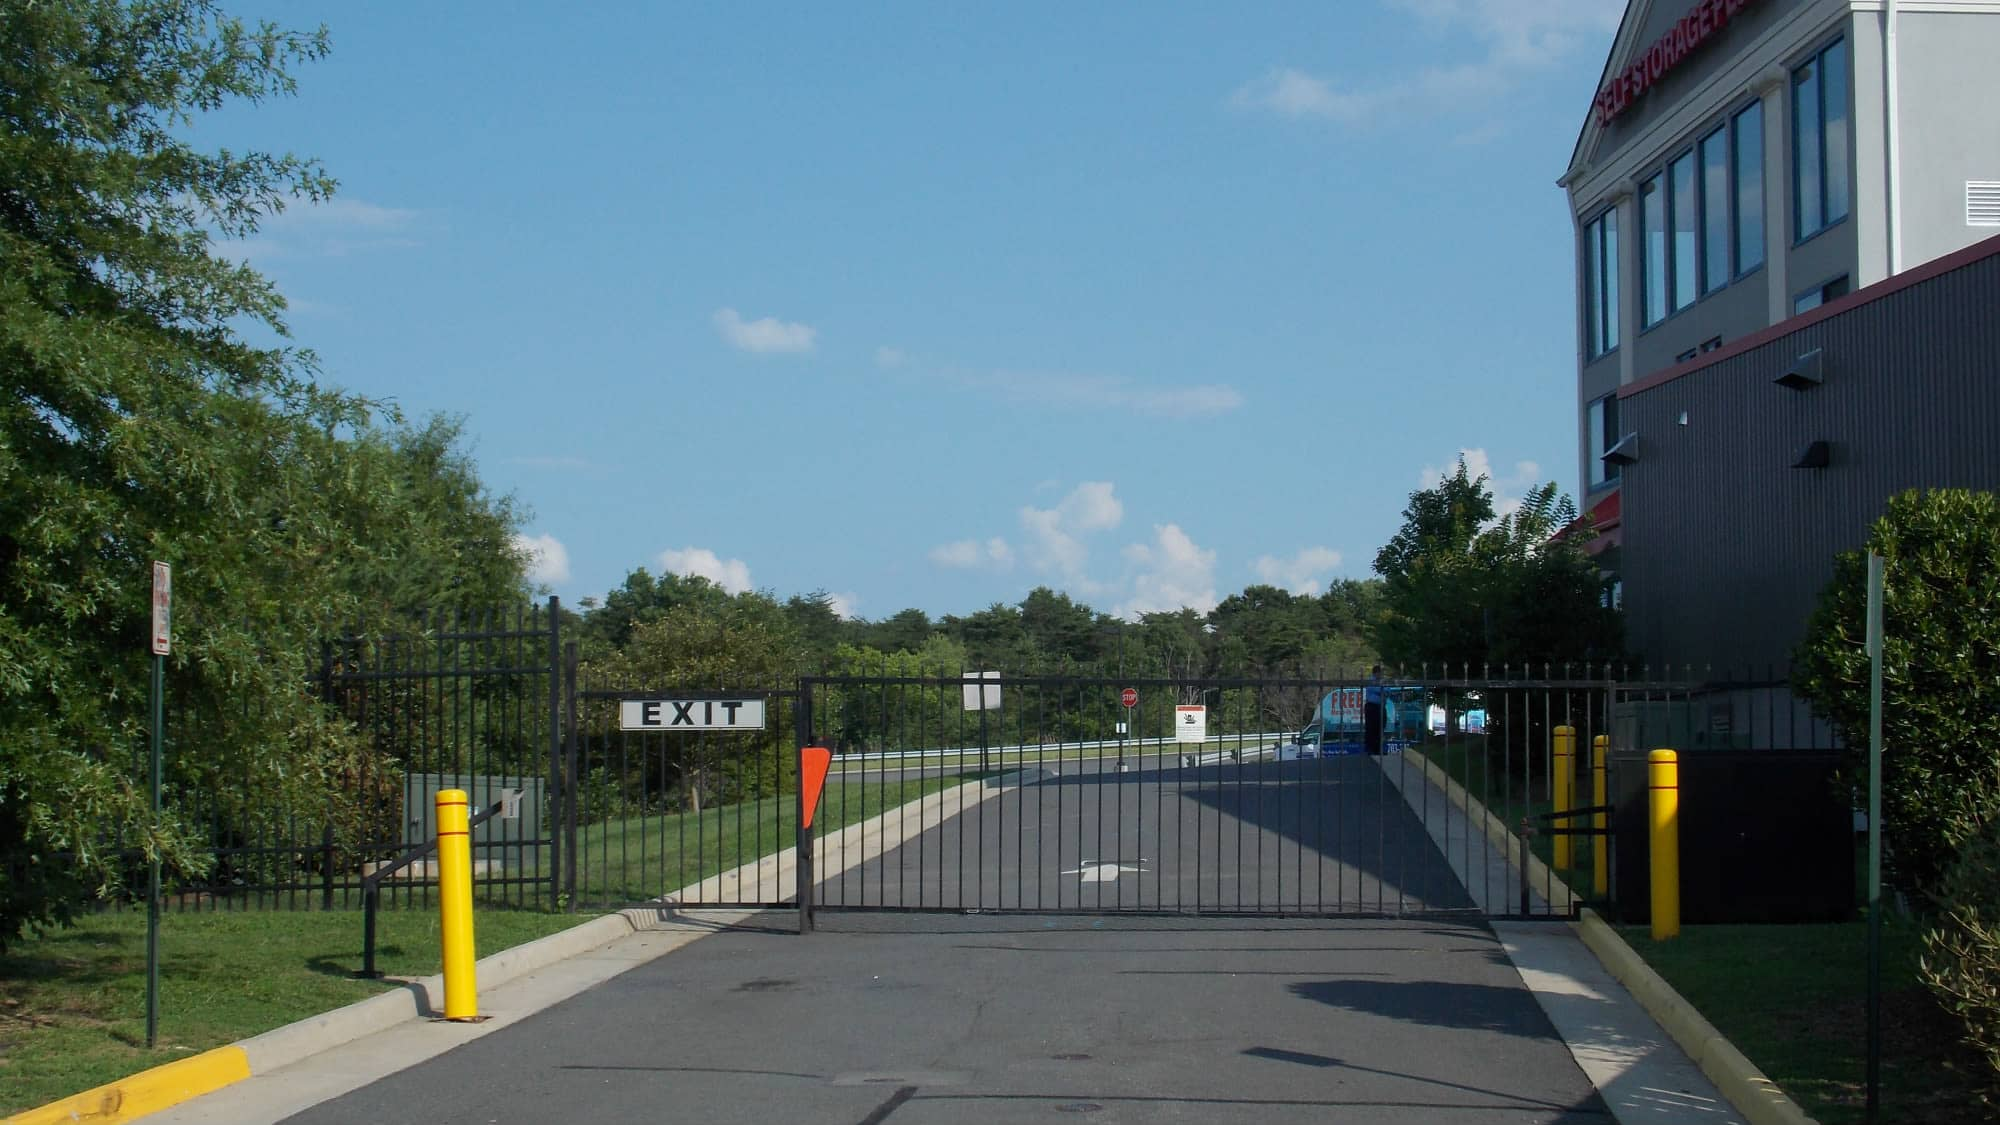 Exit gate at Self Storage Plus in Manassas, VA